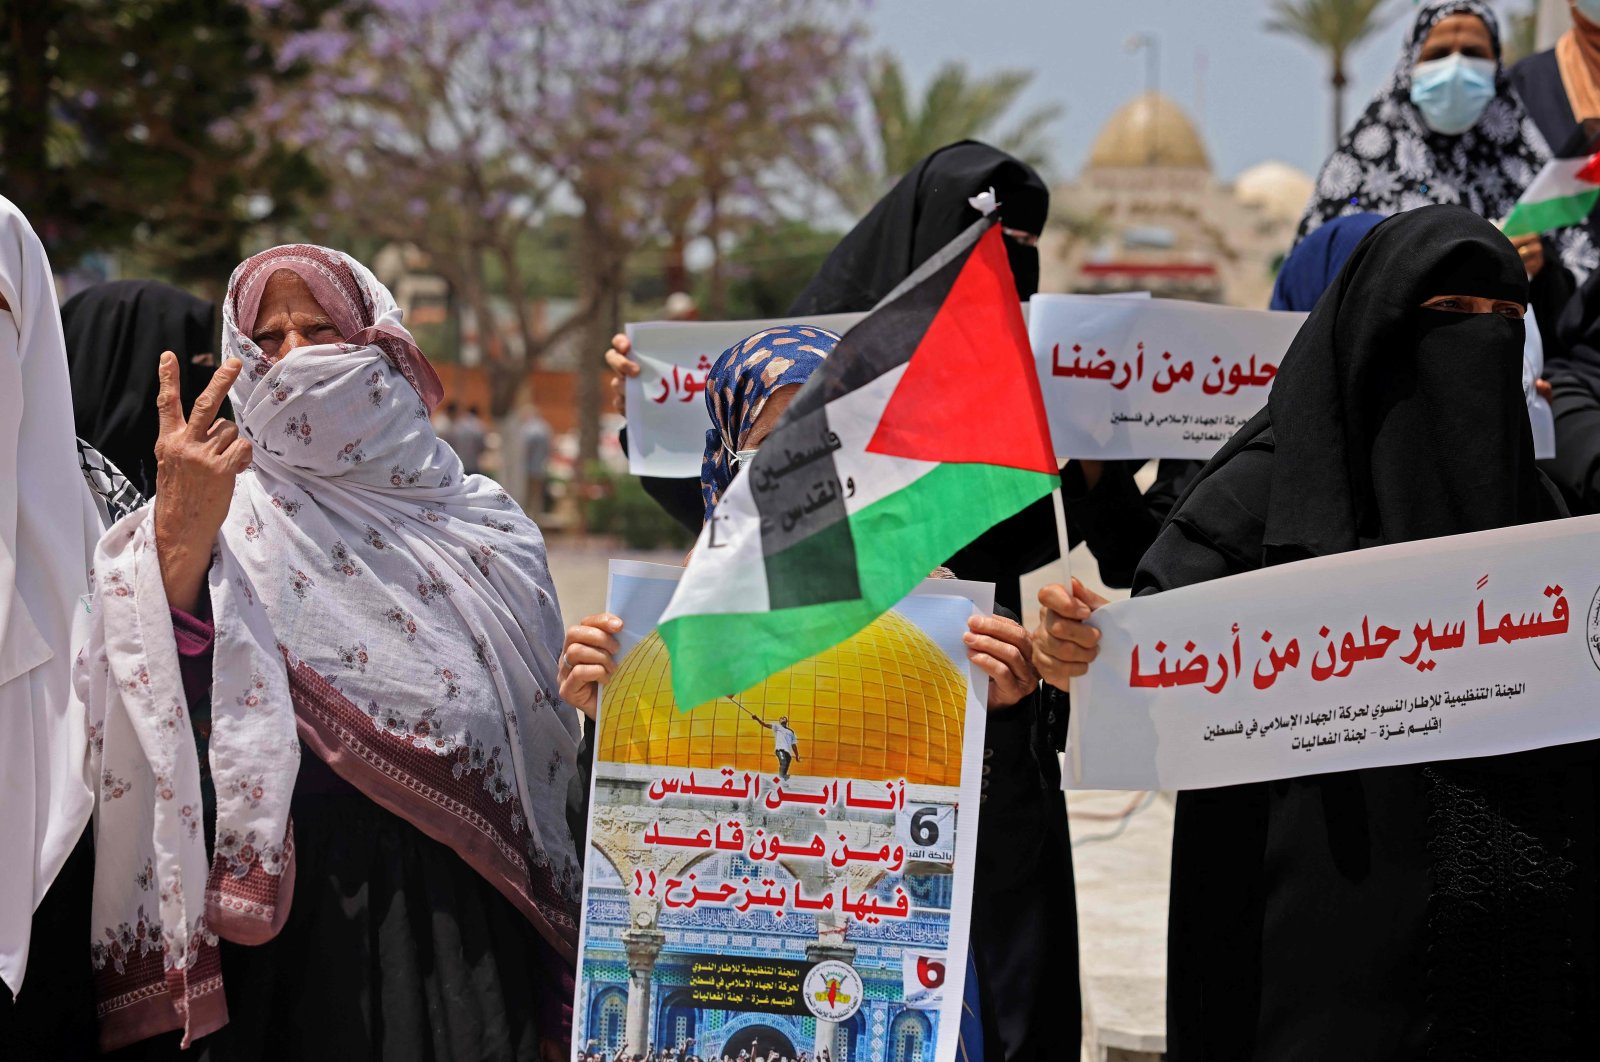 Palestinian women stand with signs and banners during a protest in Gaza City on May 10, 2021 in solidarity with Palestinian families facing Israeli eviction orders in the Sheikh Jarrah neighbourhood of East Jerusalem. (AFP Photo)